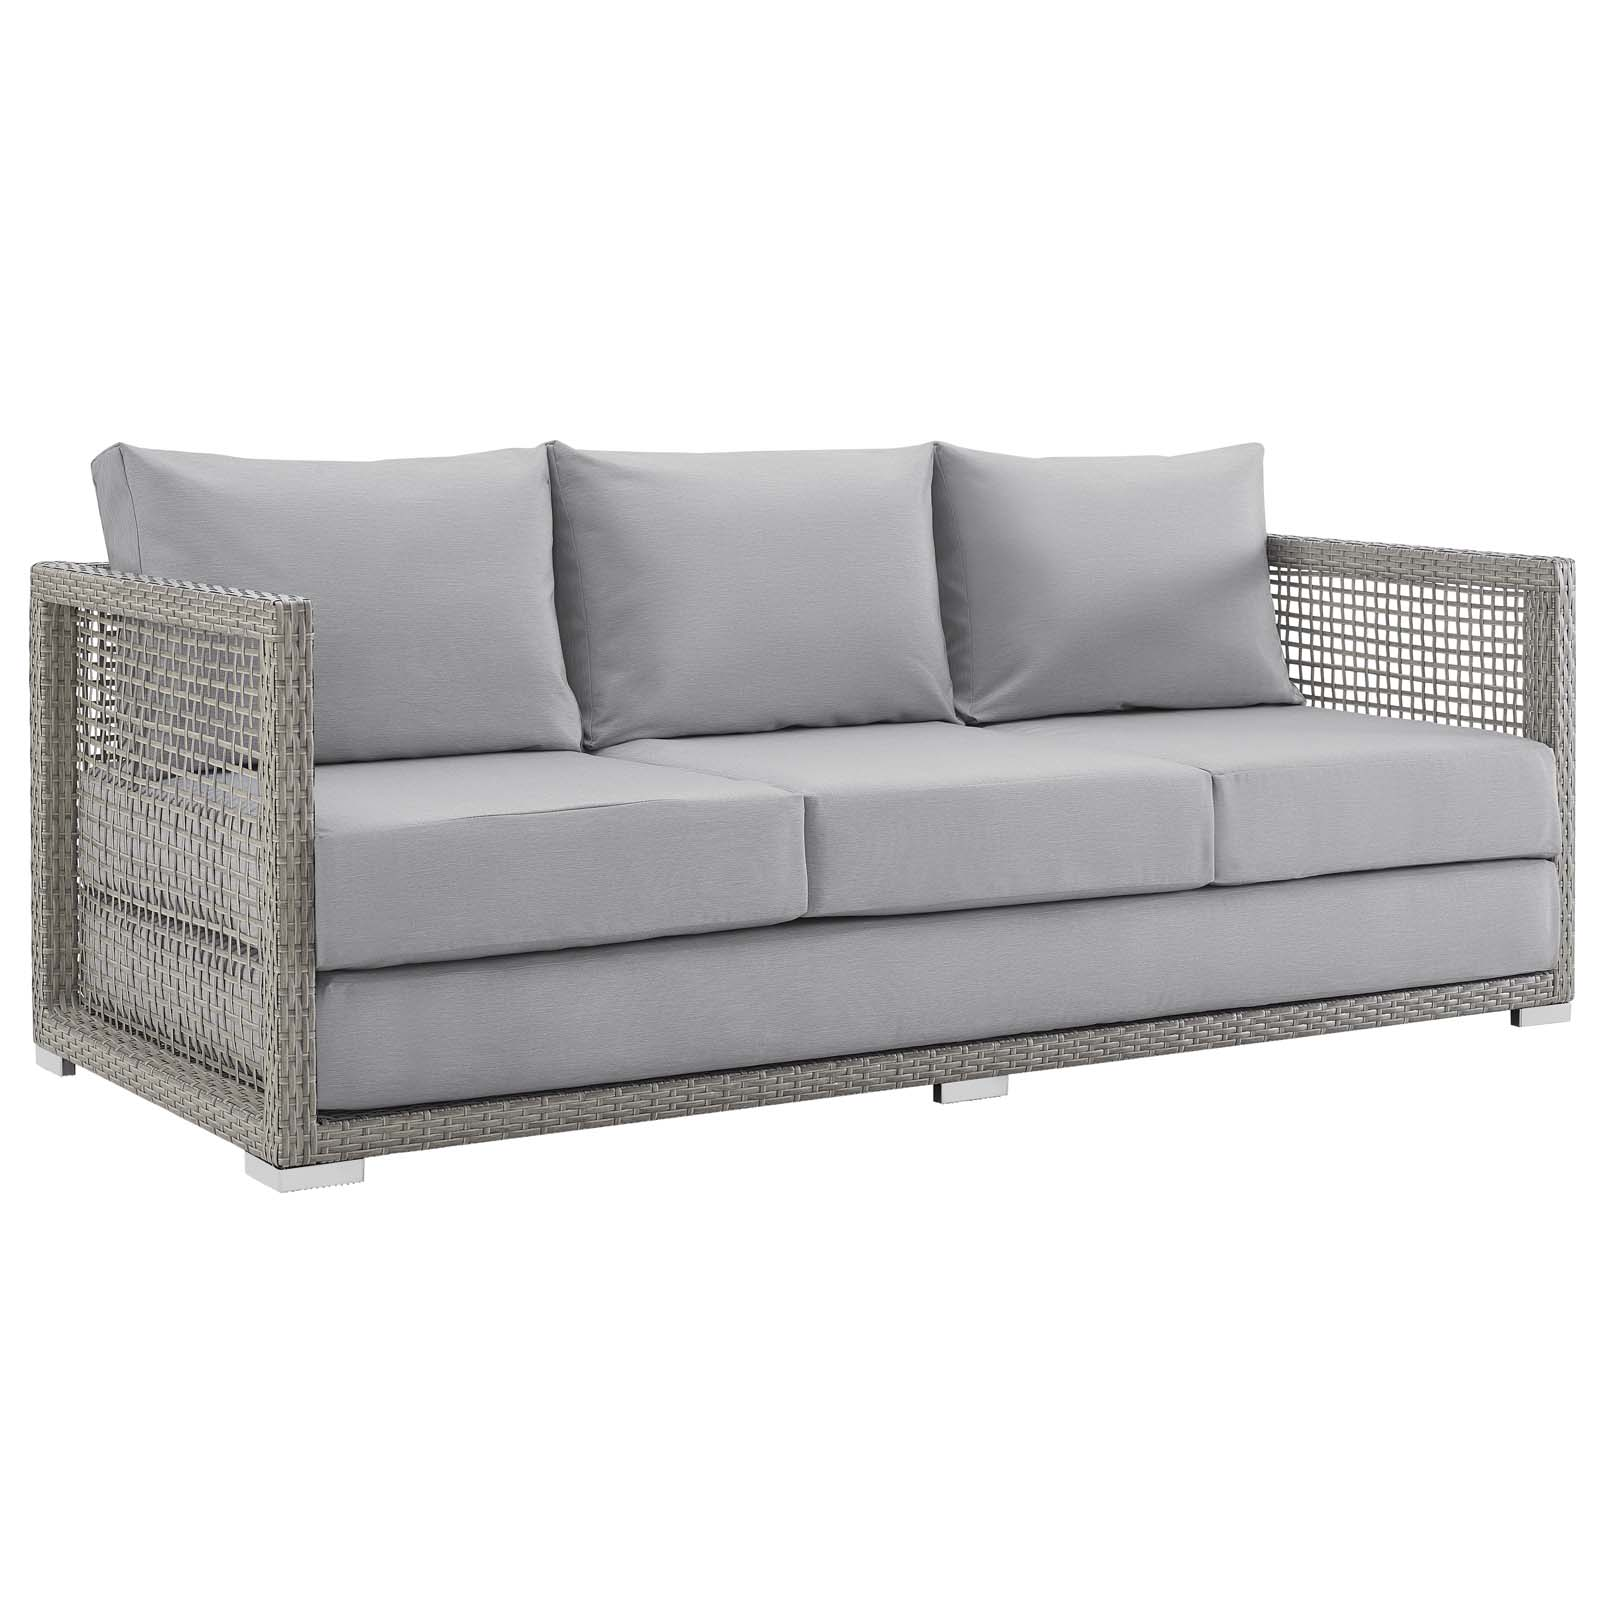 Open Weave Rattan Sofa Mid Century Aura Patio Wicker Rattan Sofa In Gray By Modway Seven